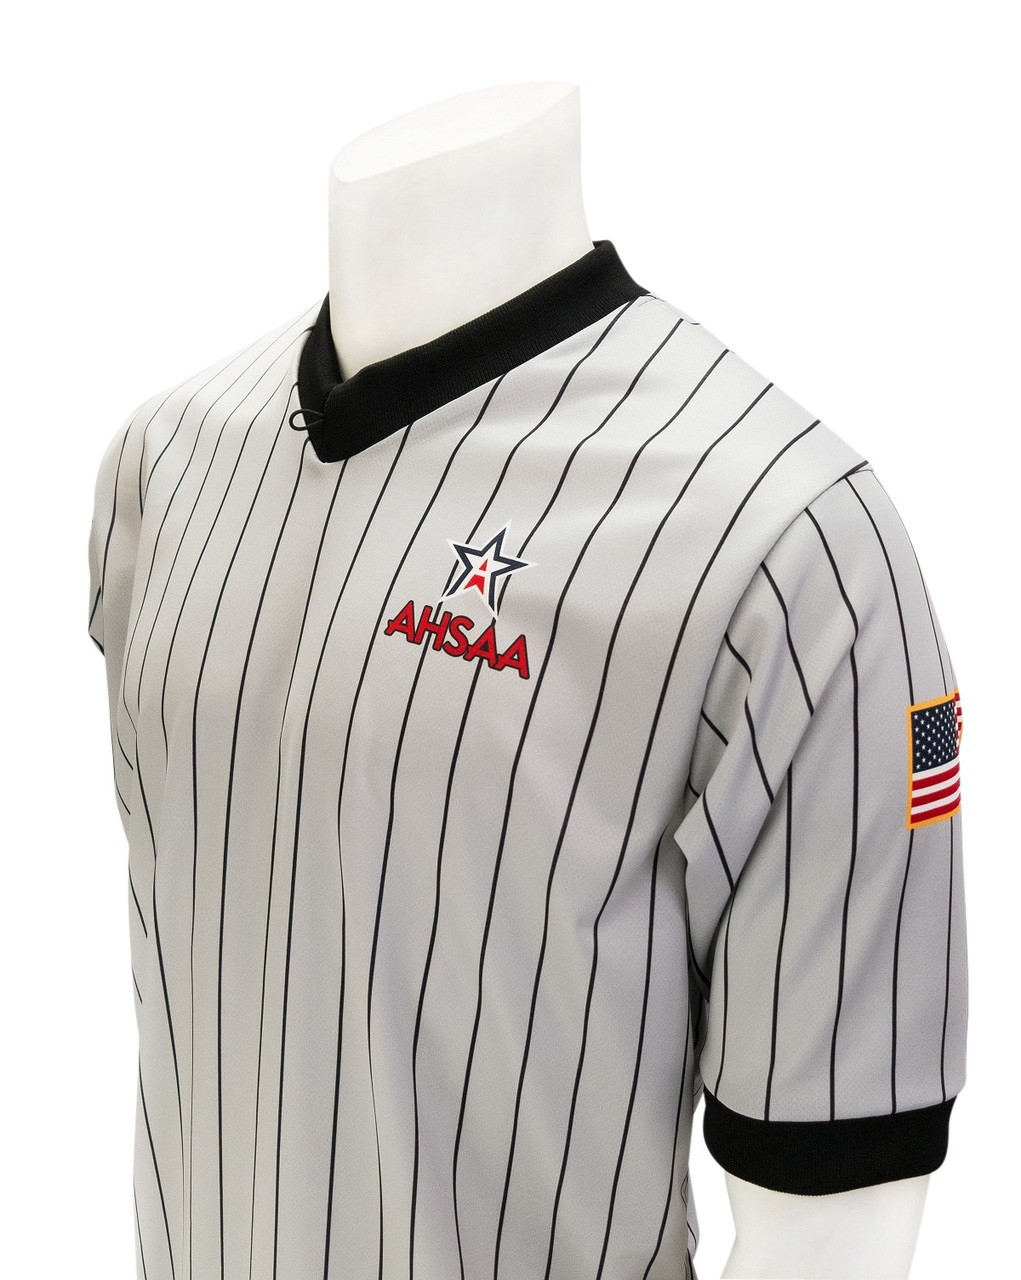 Alabama AHSAA Men's Wrestling Referee Shirt